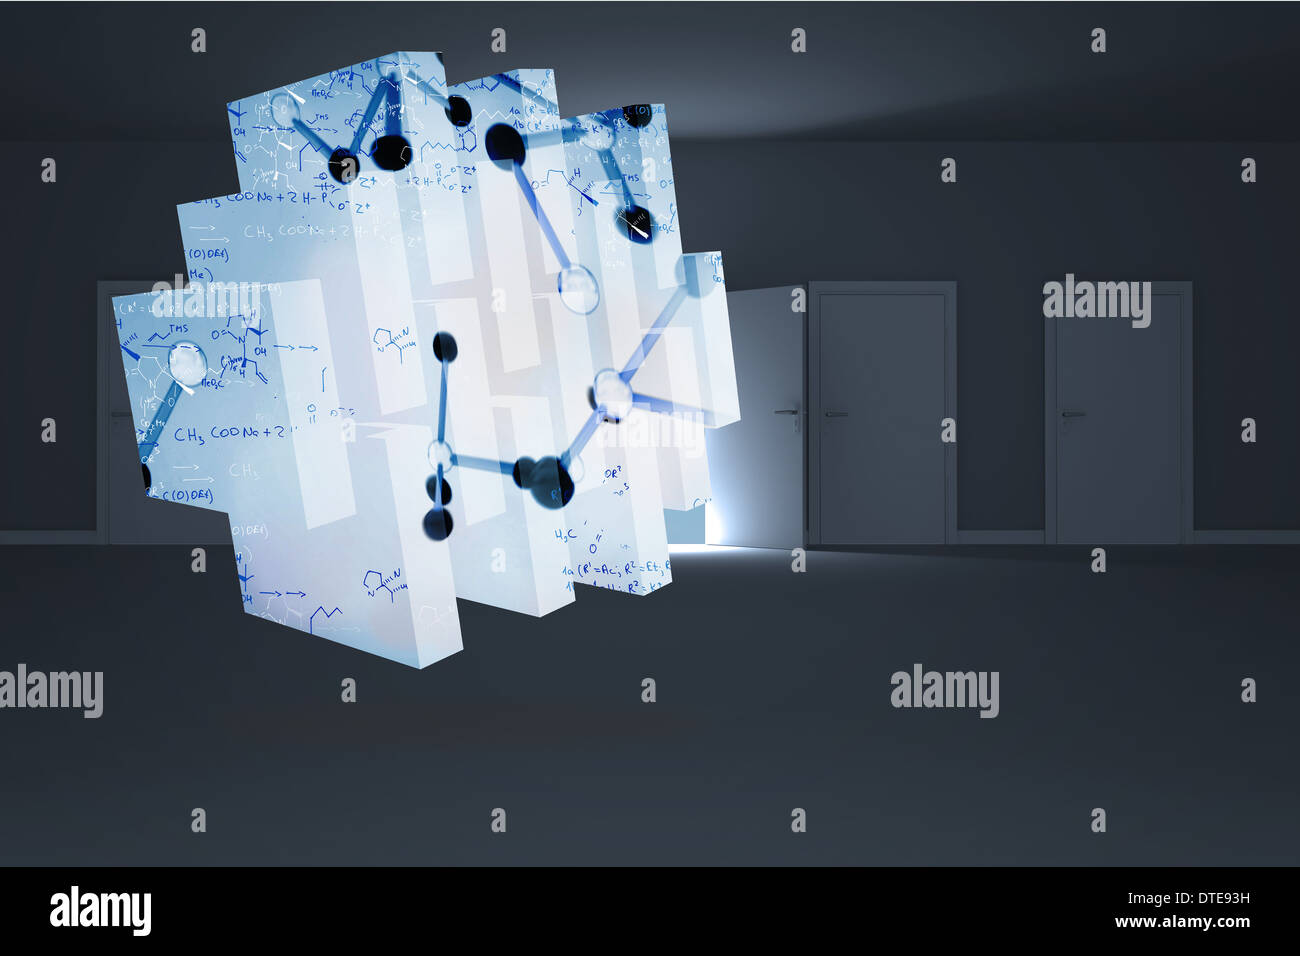 Composite image of microscopic cells on abstract screen - Stock Image